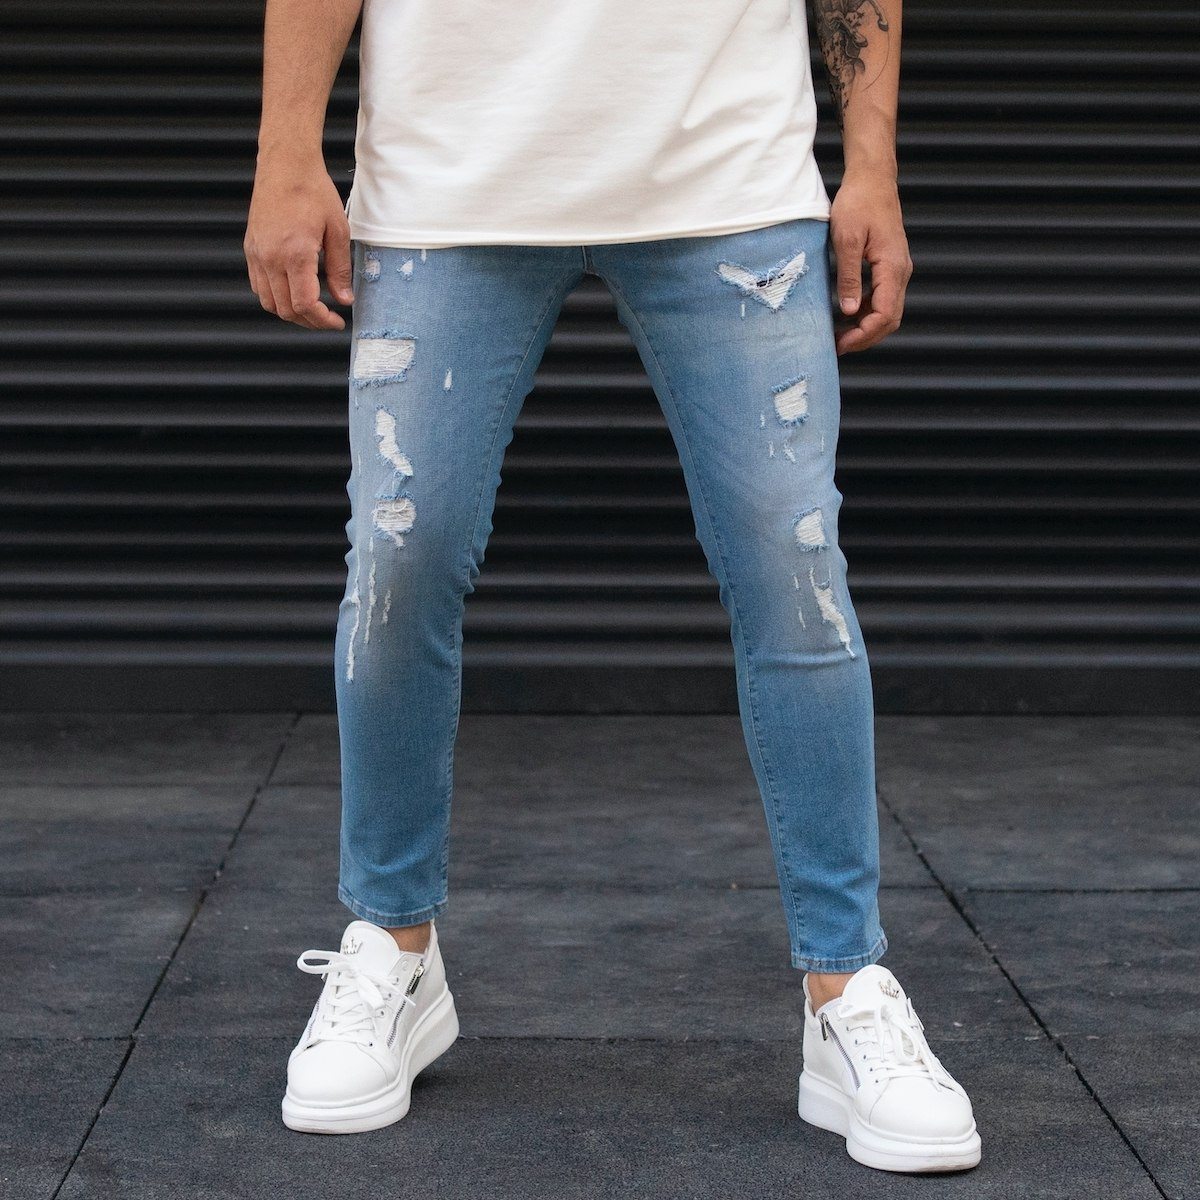 Men's Ripped Blue Jeans